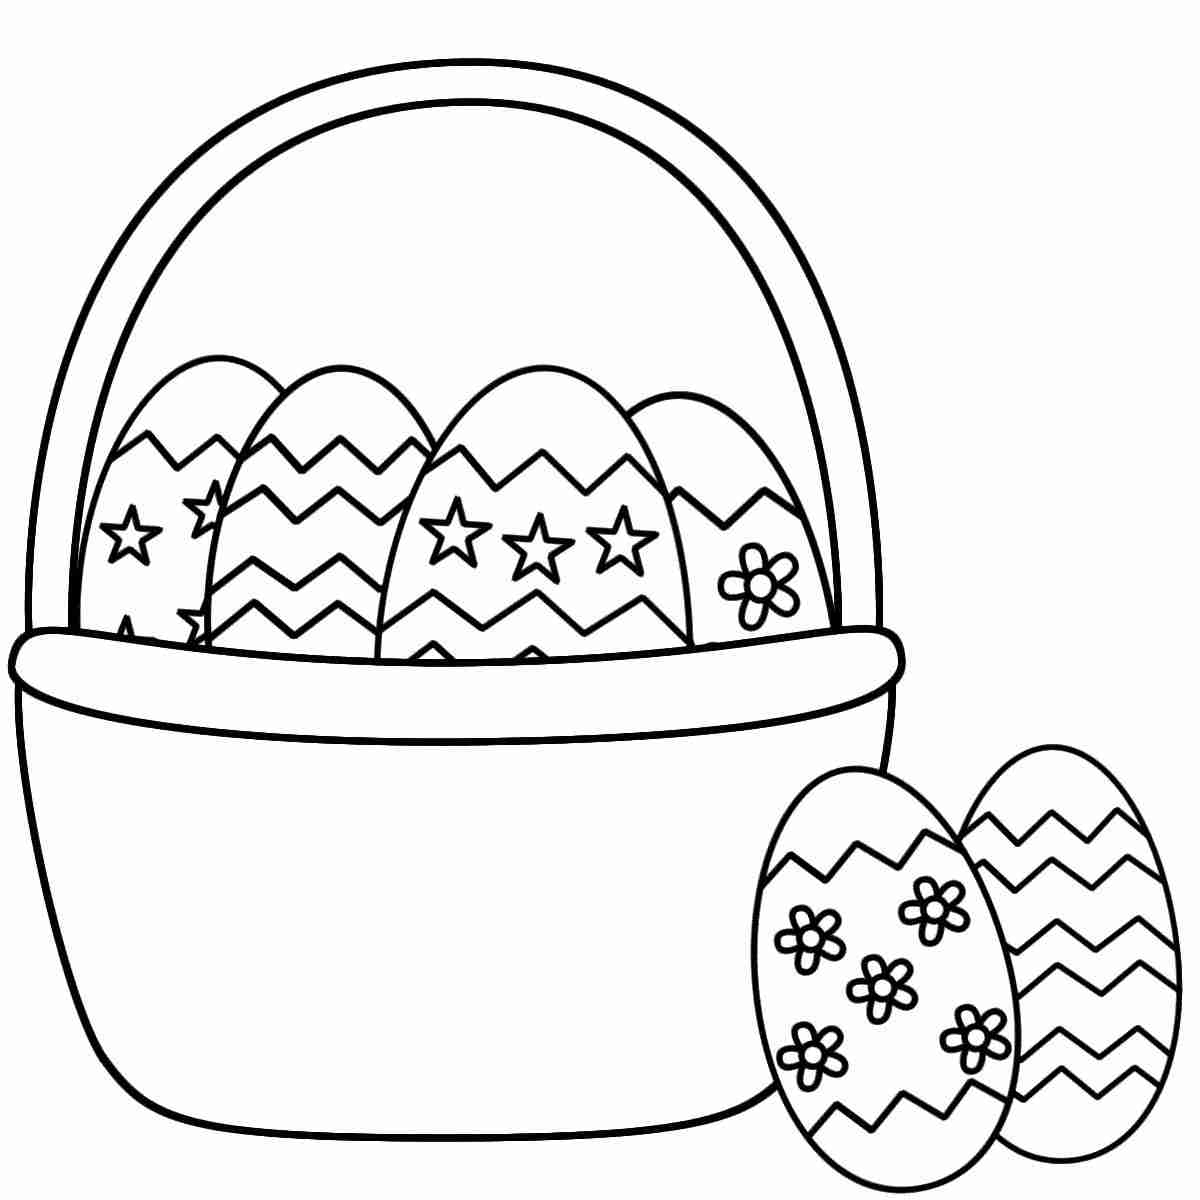 1200x1200 Empty Easter Basket Coloring Page Free Download At Pages Olegratiy